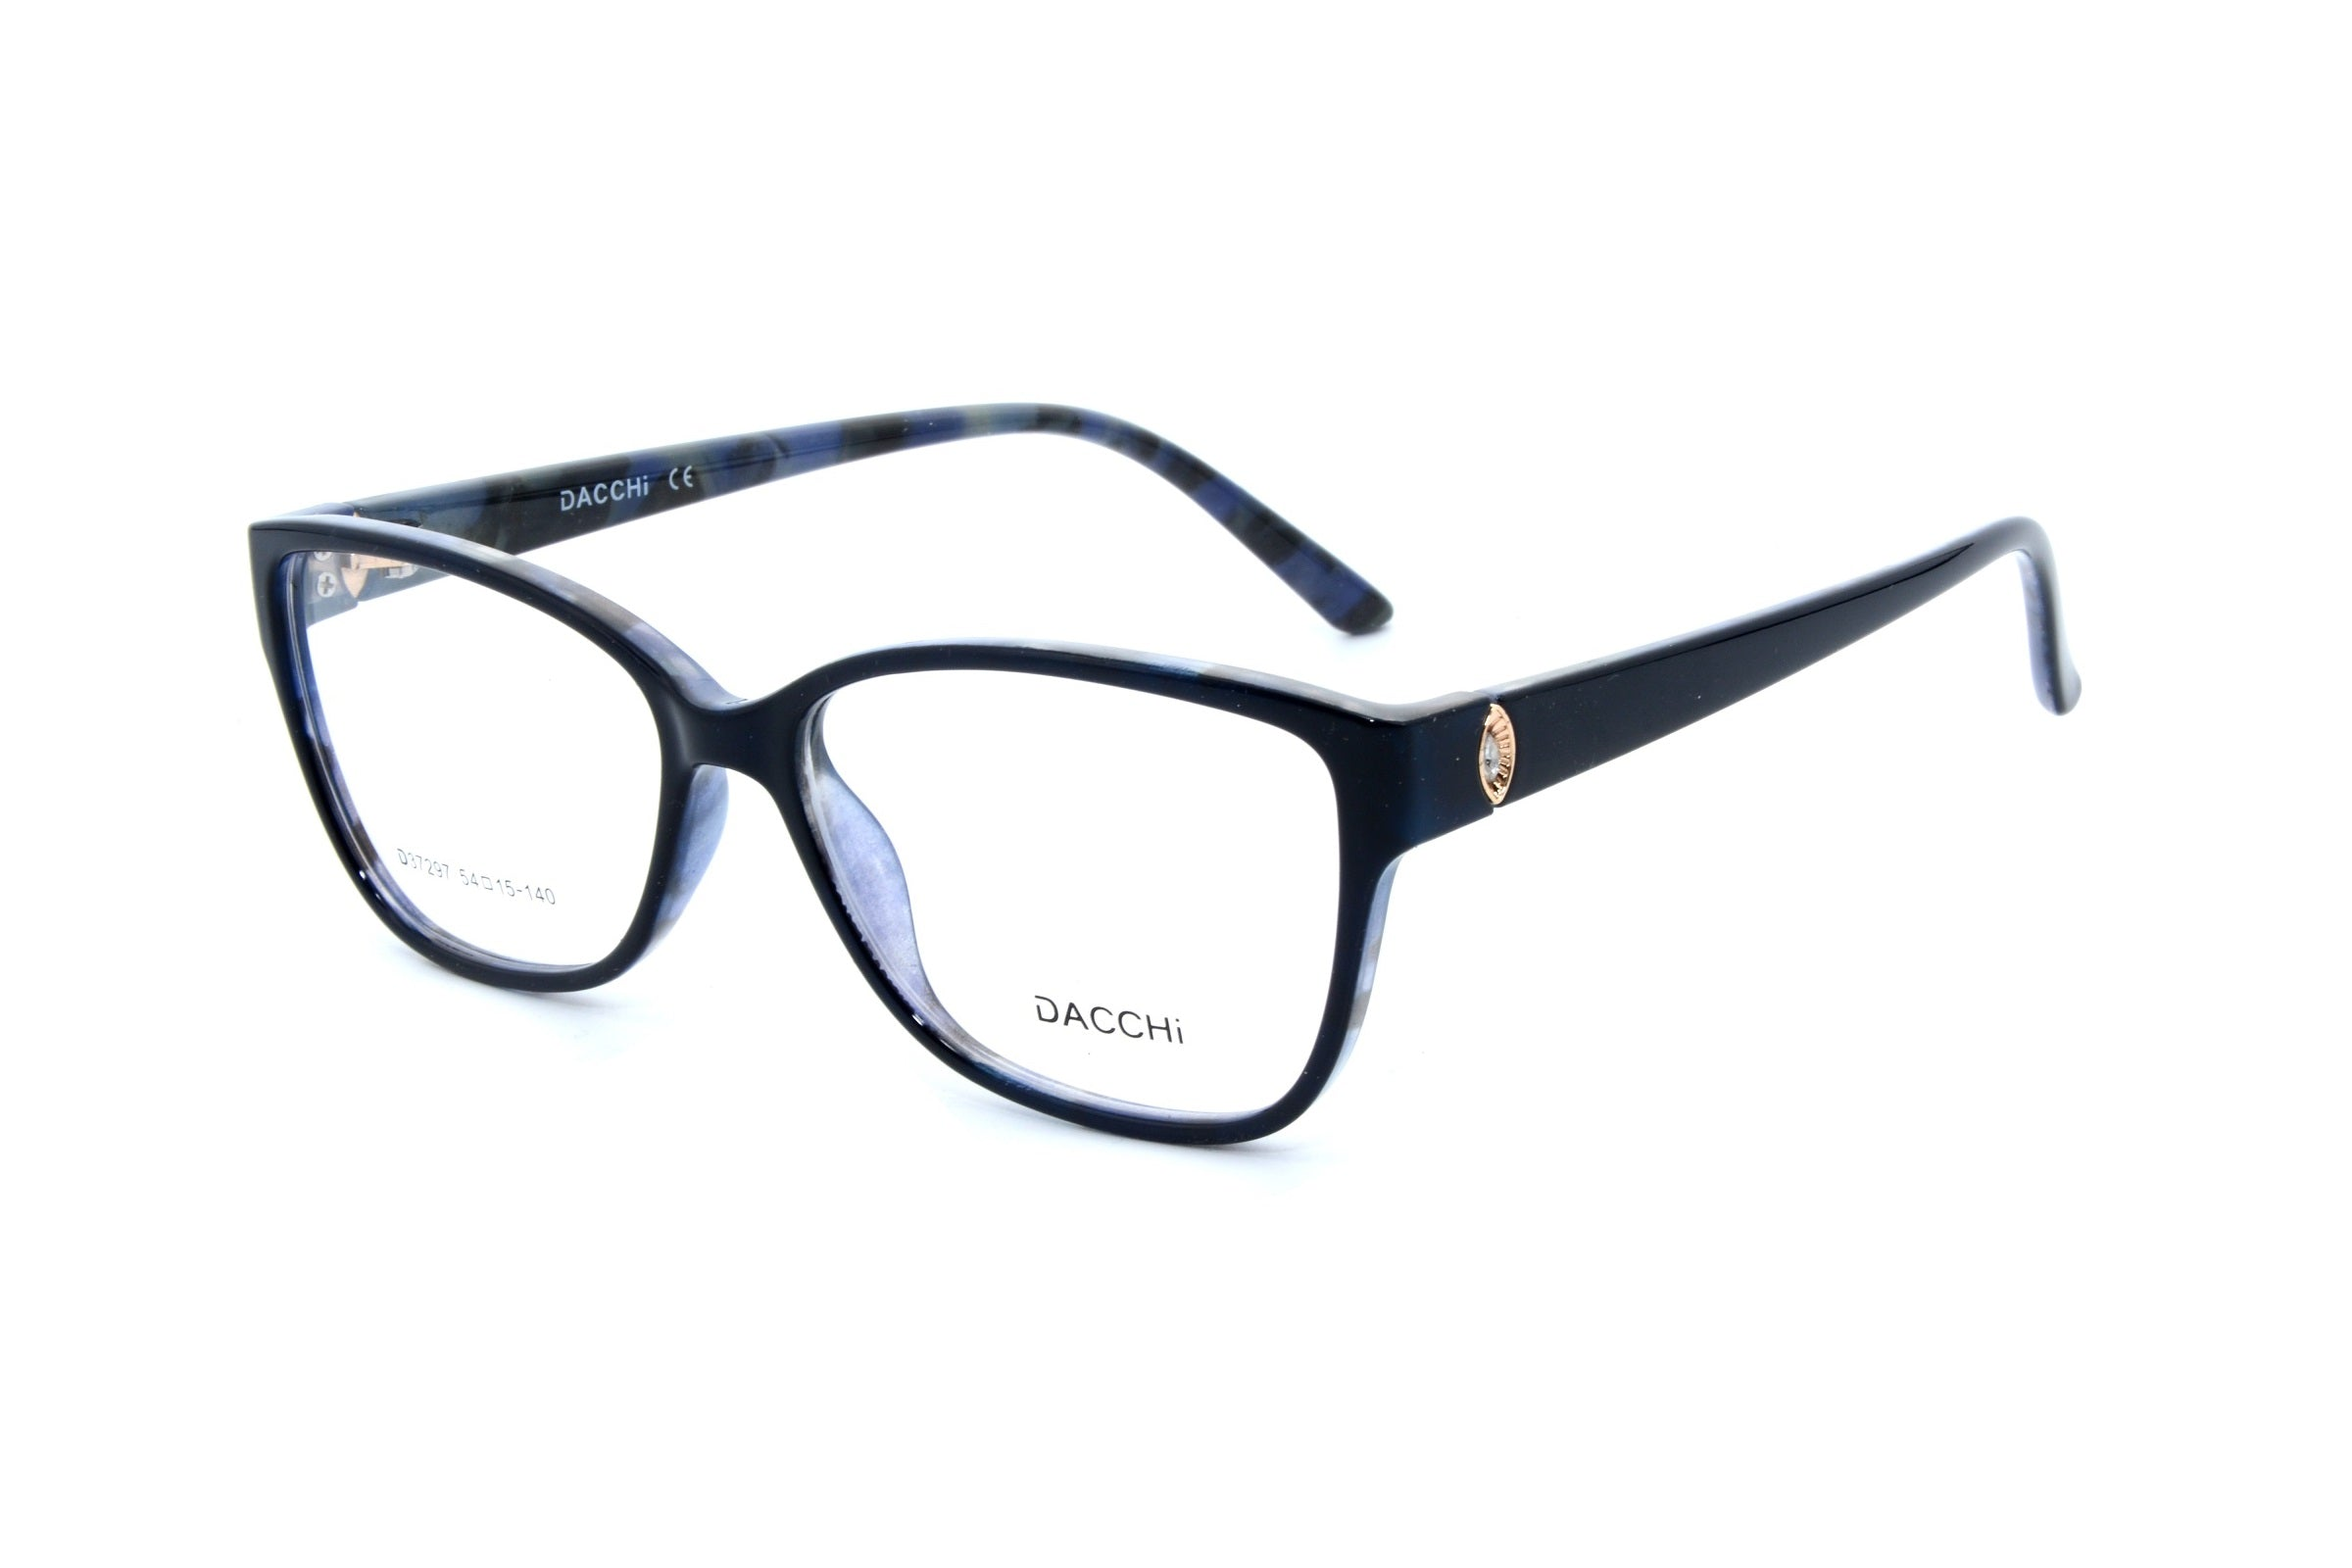 Dacchi eyewear 37297, C3 - Optics Trading